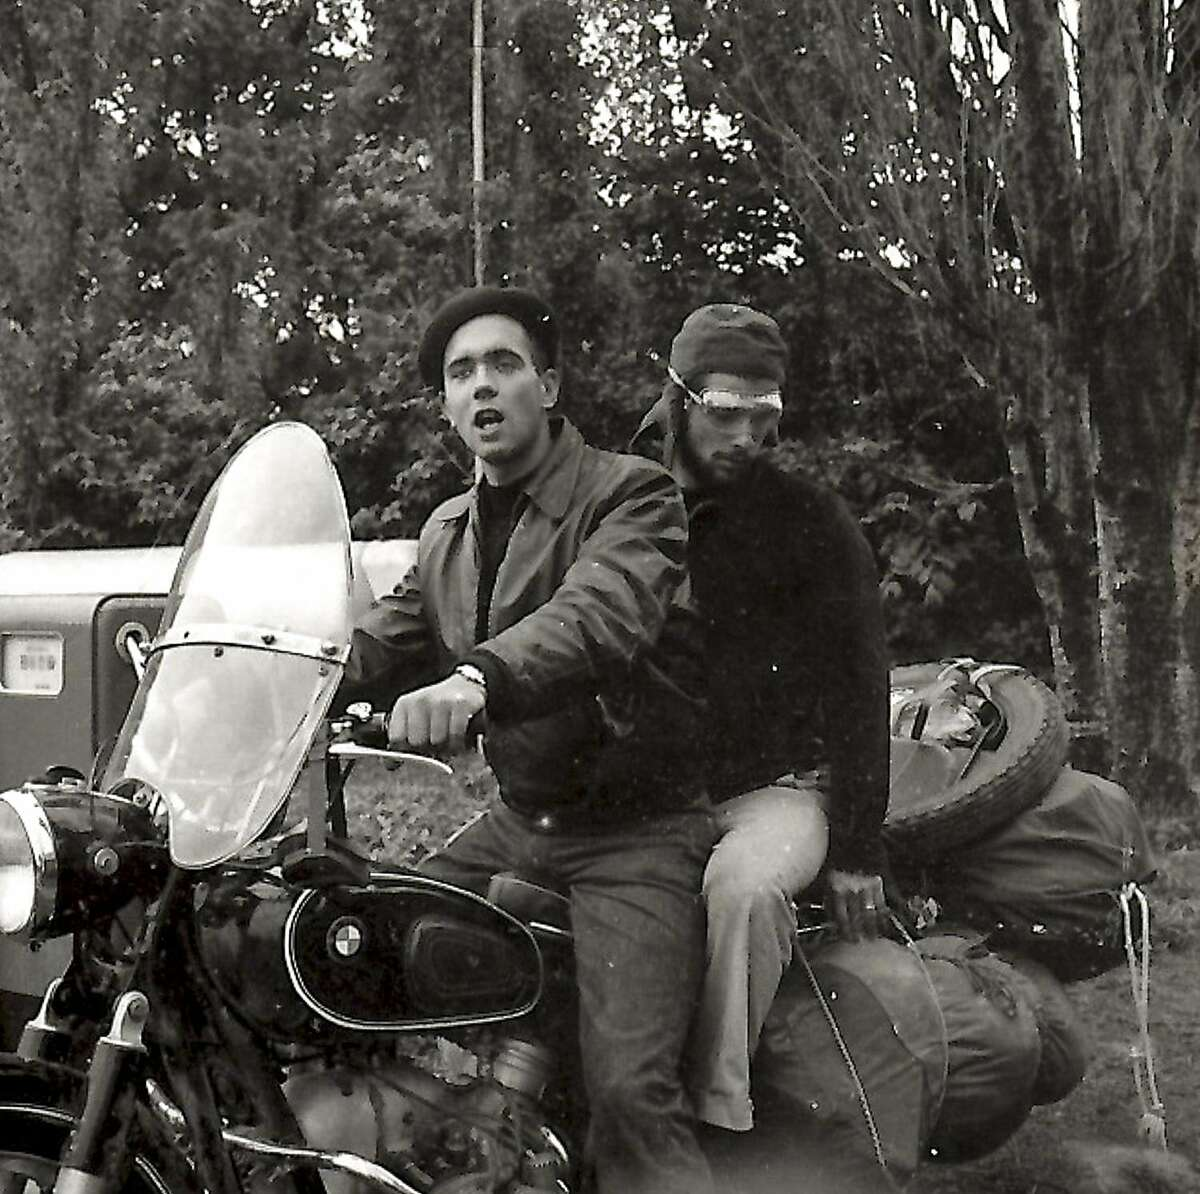 John Knoop (front) On the Way to Argentina. 1958.